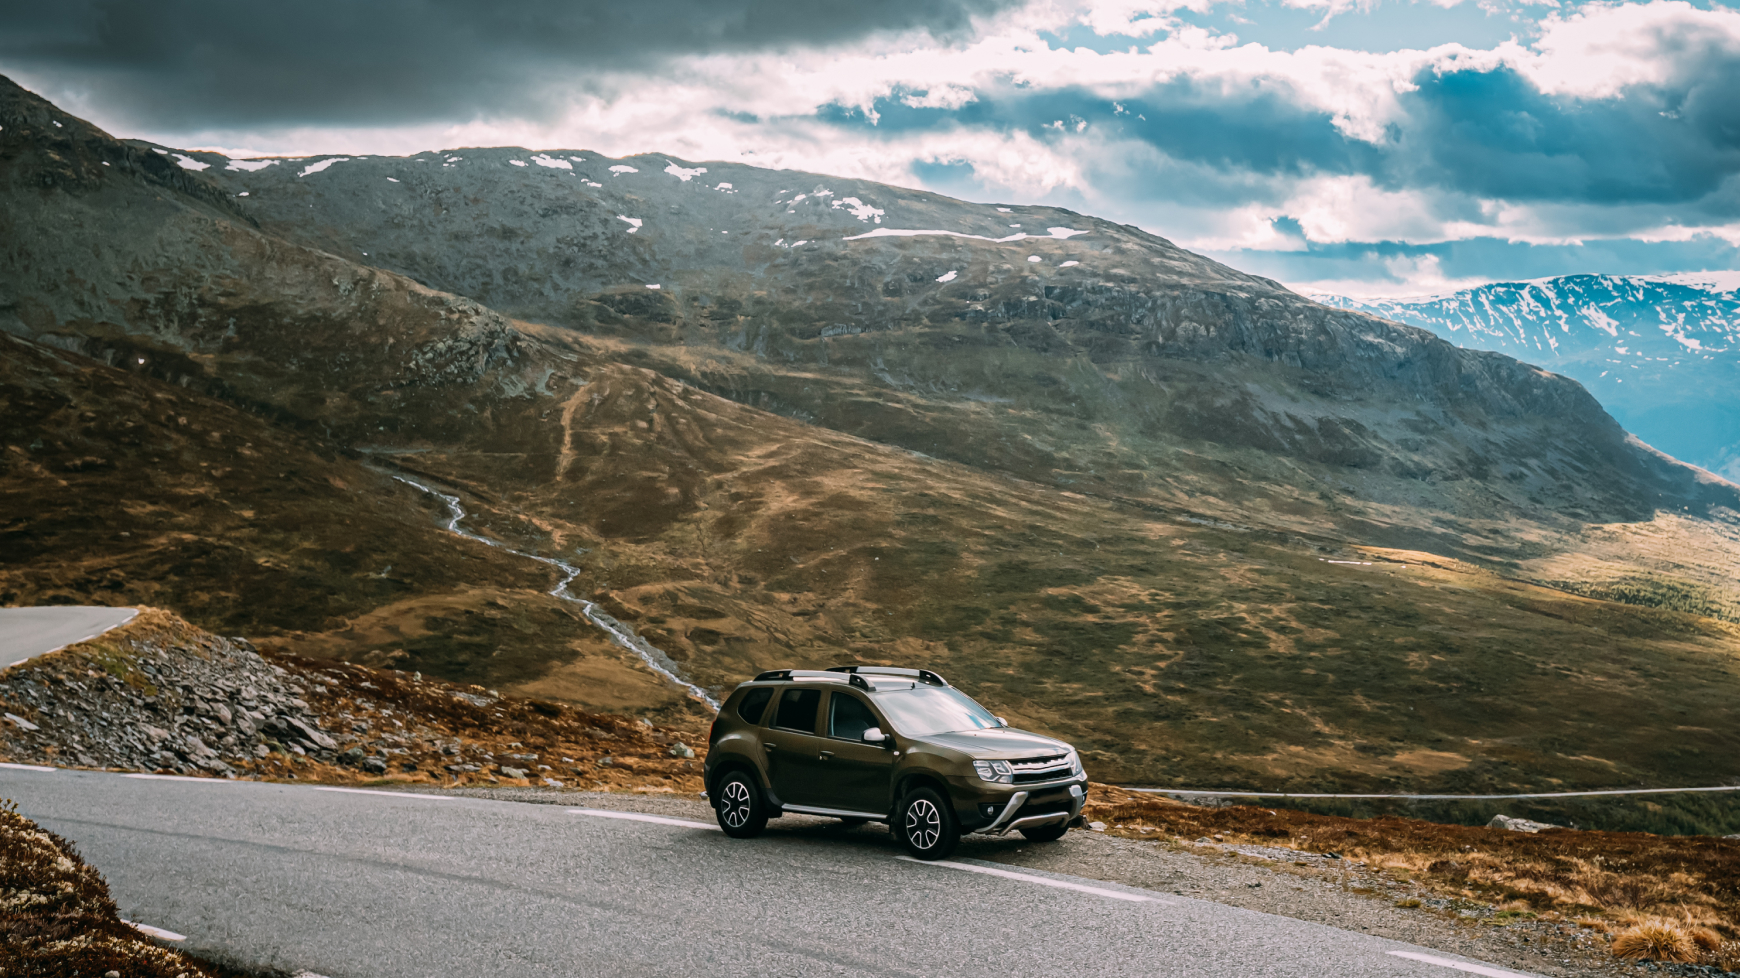 SUV Parked on a Mountain Side